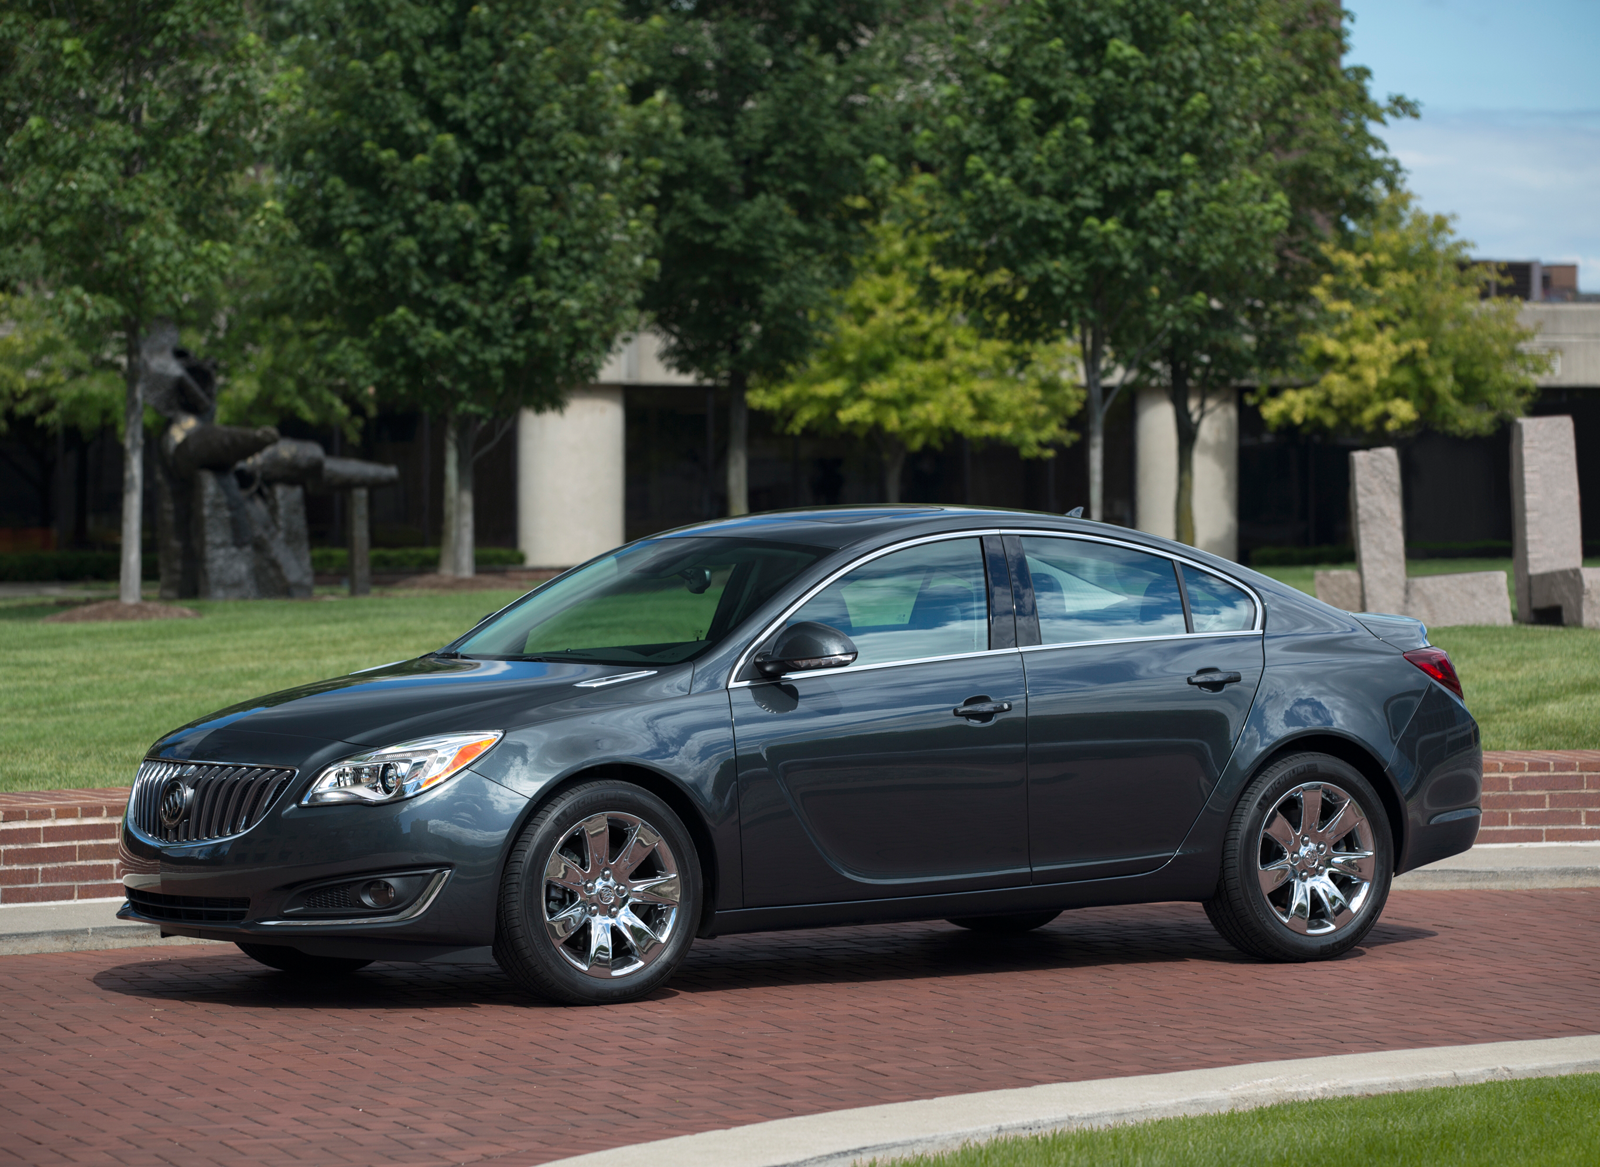 10 top American cars you can buy - Consumer Reports